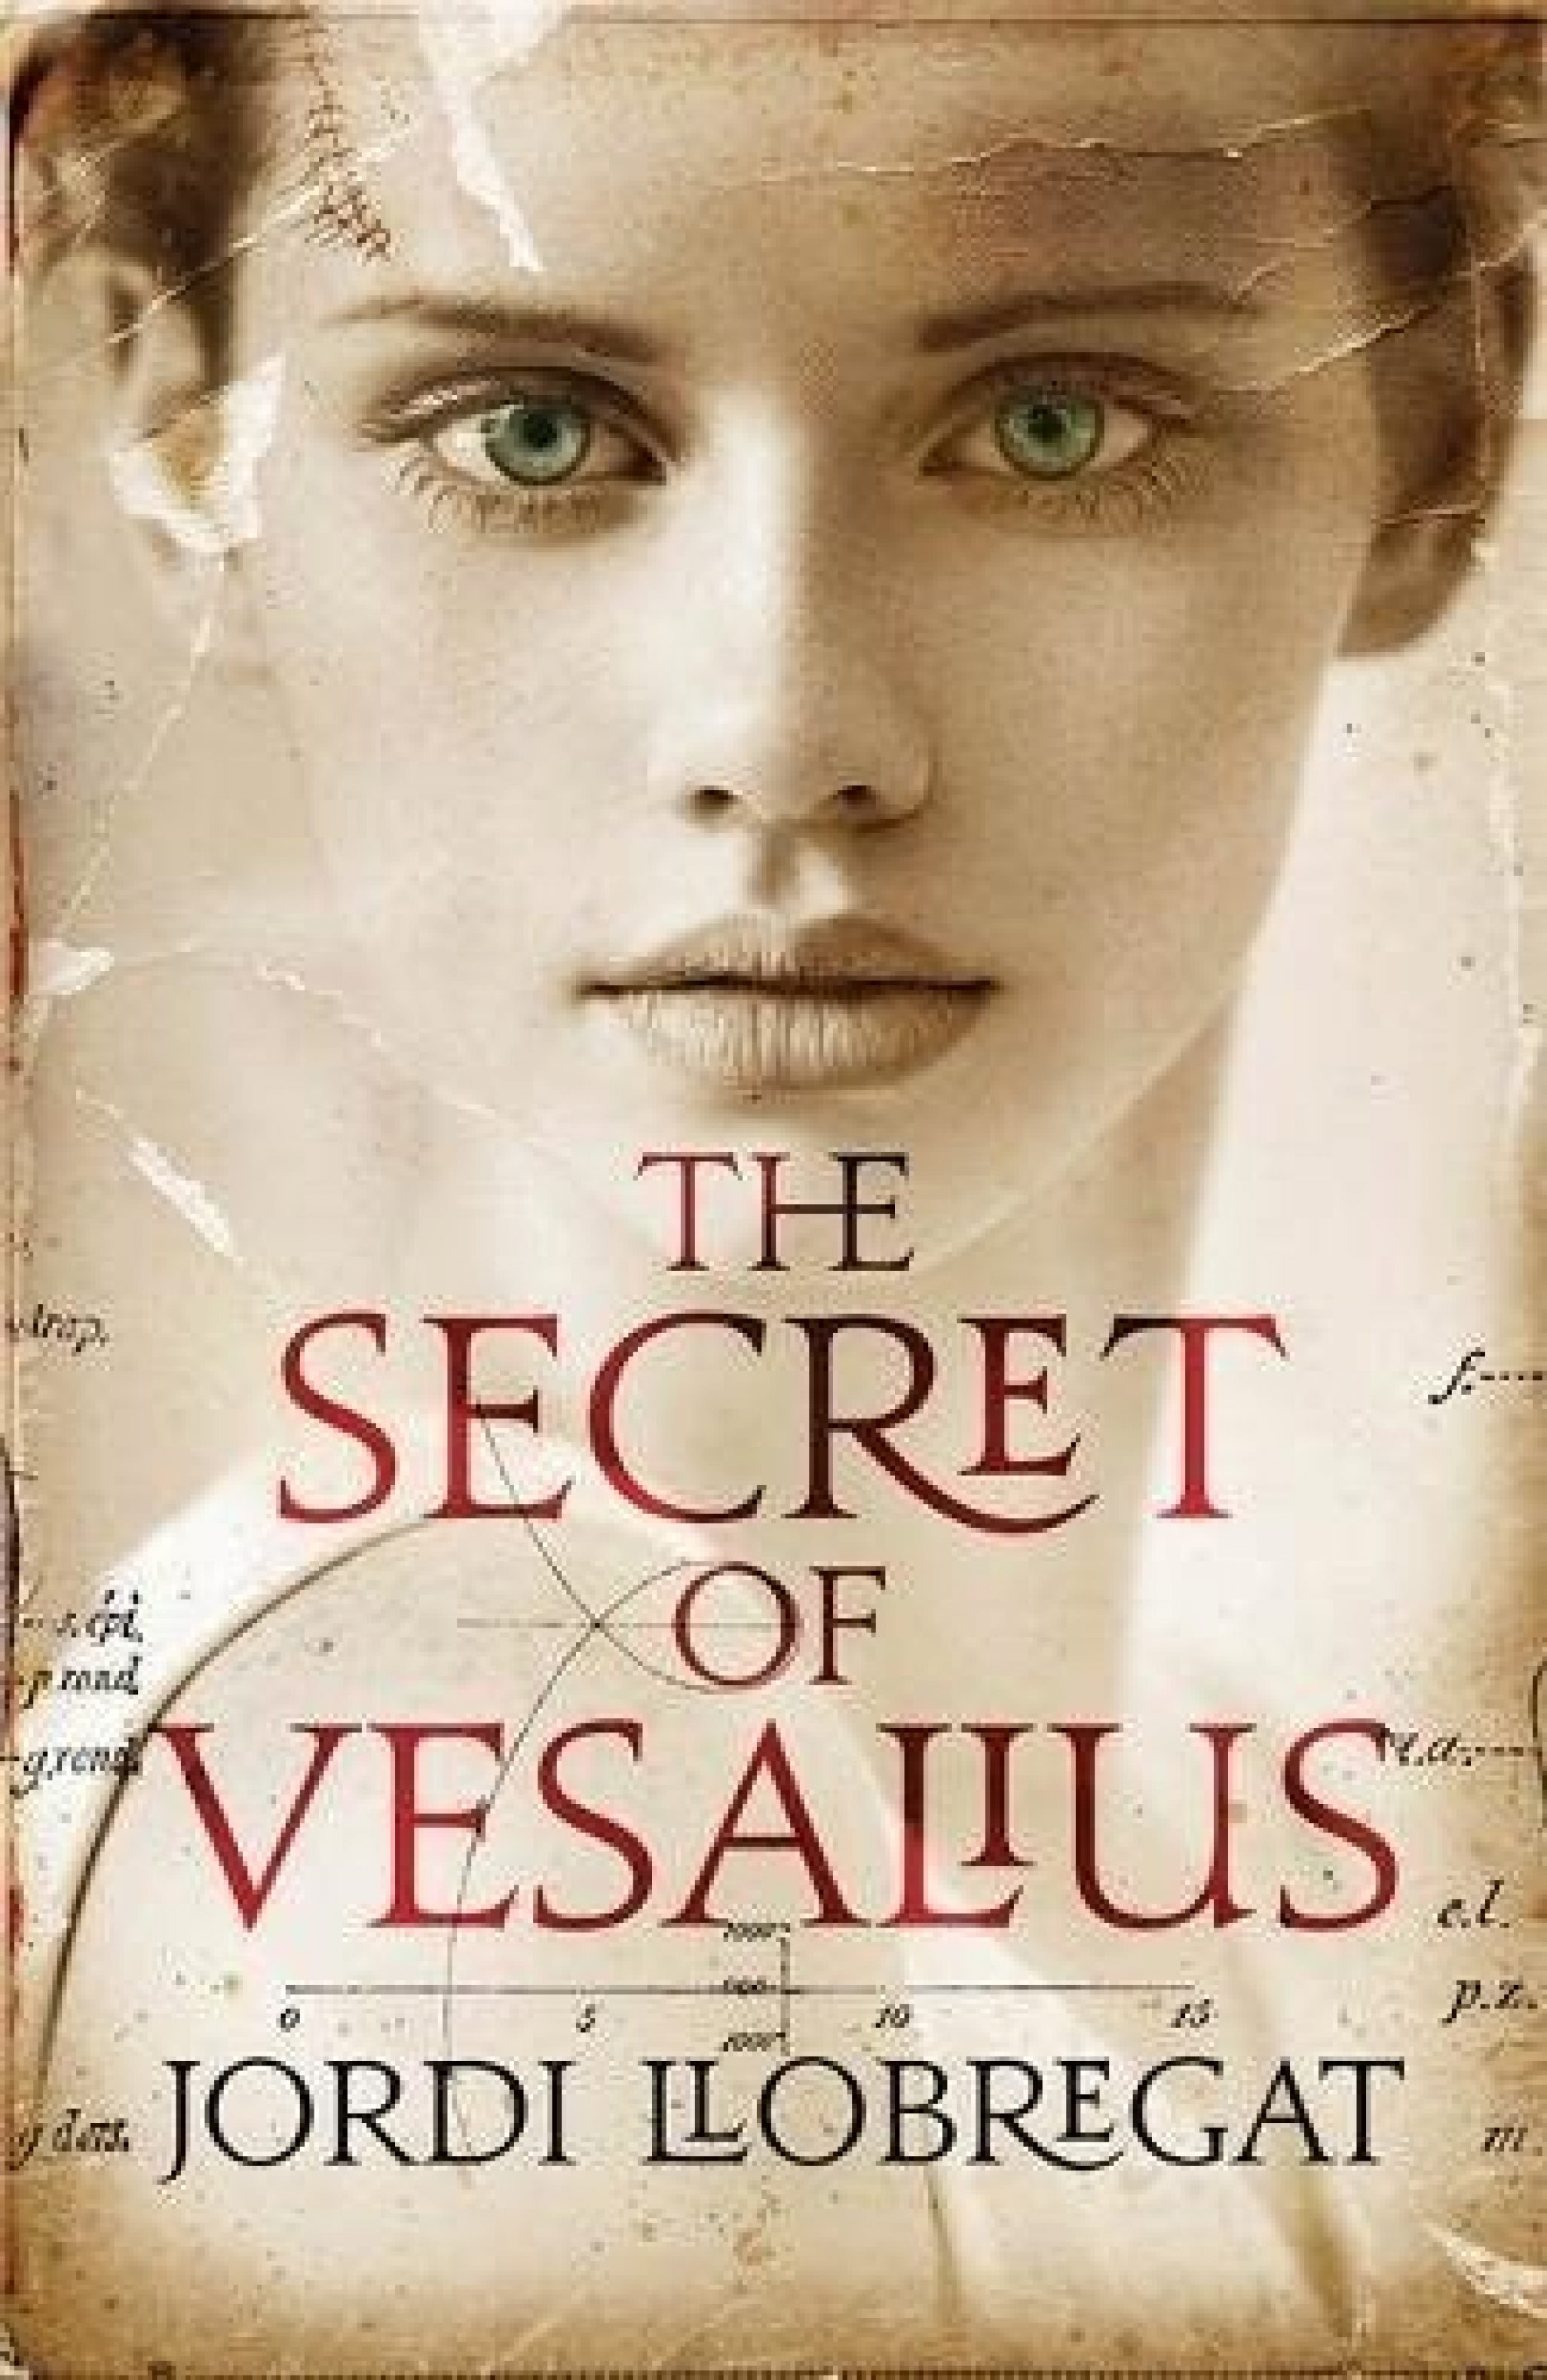 The Secret of Vesalius by Jordi Llobregat - exclusive edition and introduction from the author